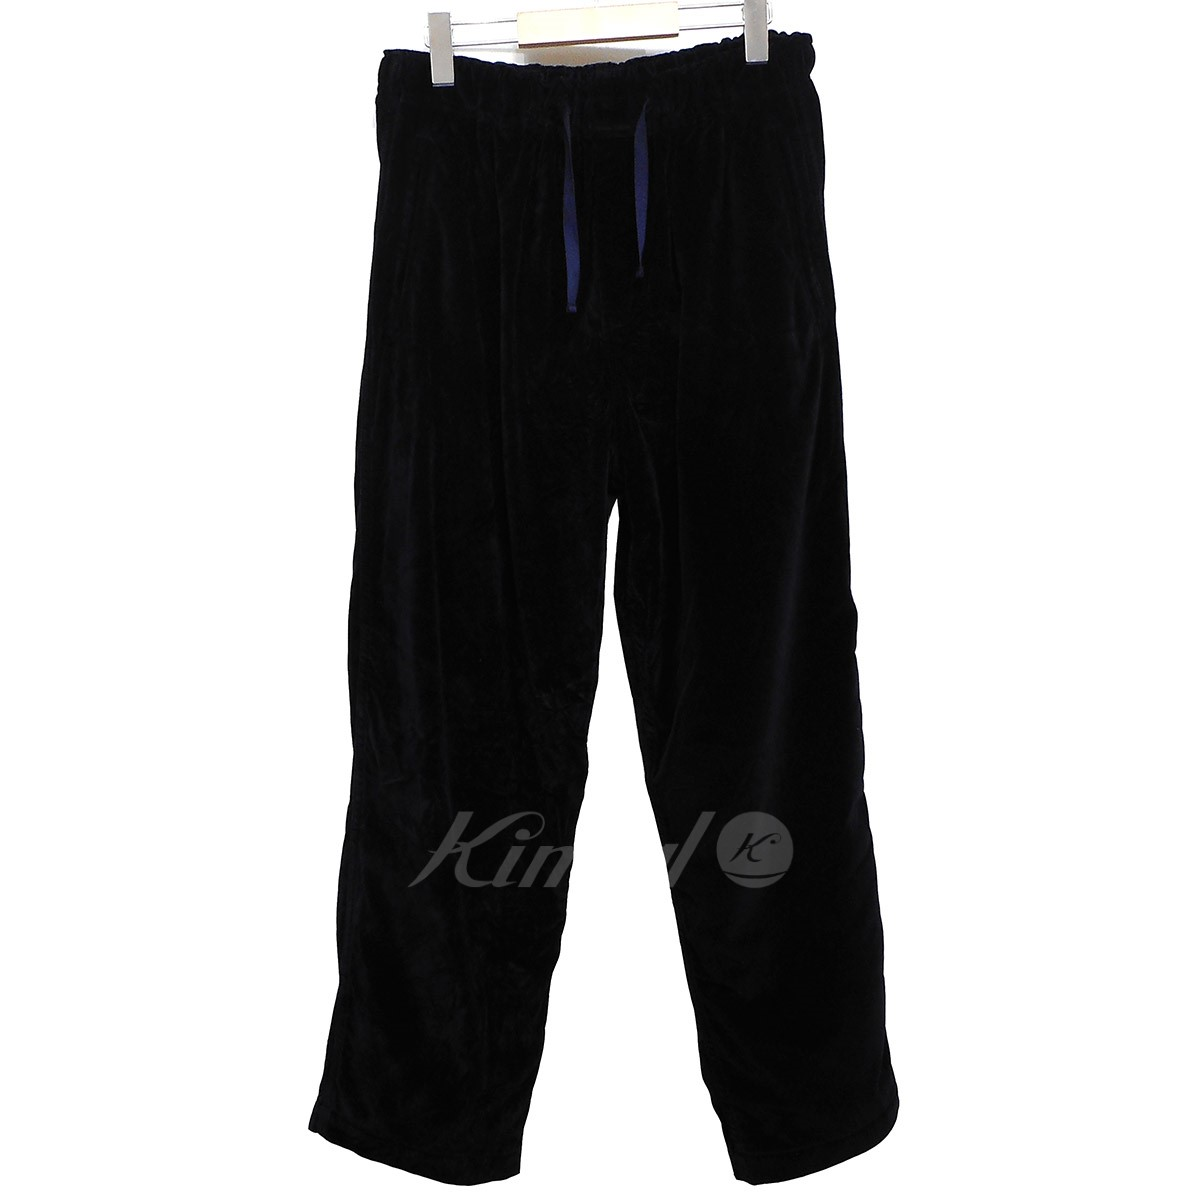 日本限定 【中古】Needles 17AW String Work Pants C/R Velvet 【送料無料】 【000695】 【IK1369】, シモムラ 0095b2f7